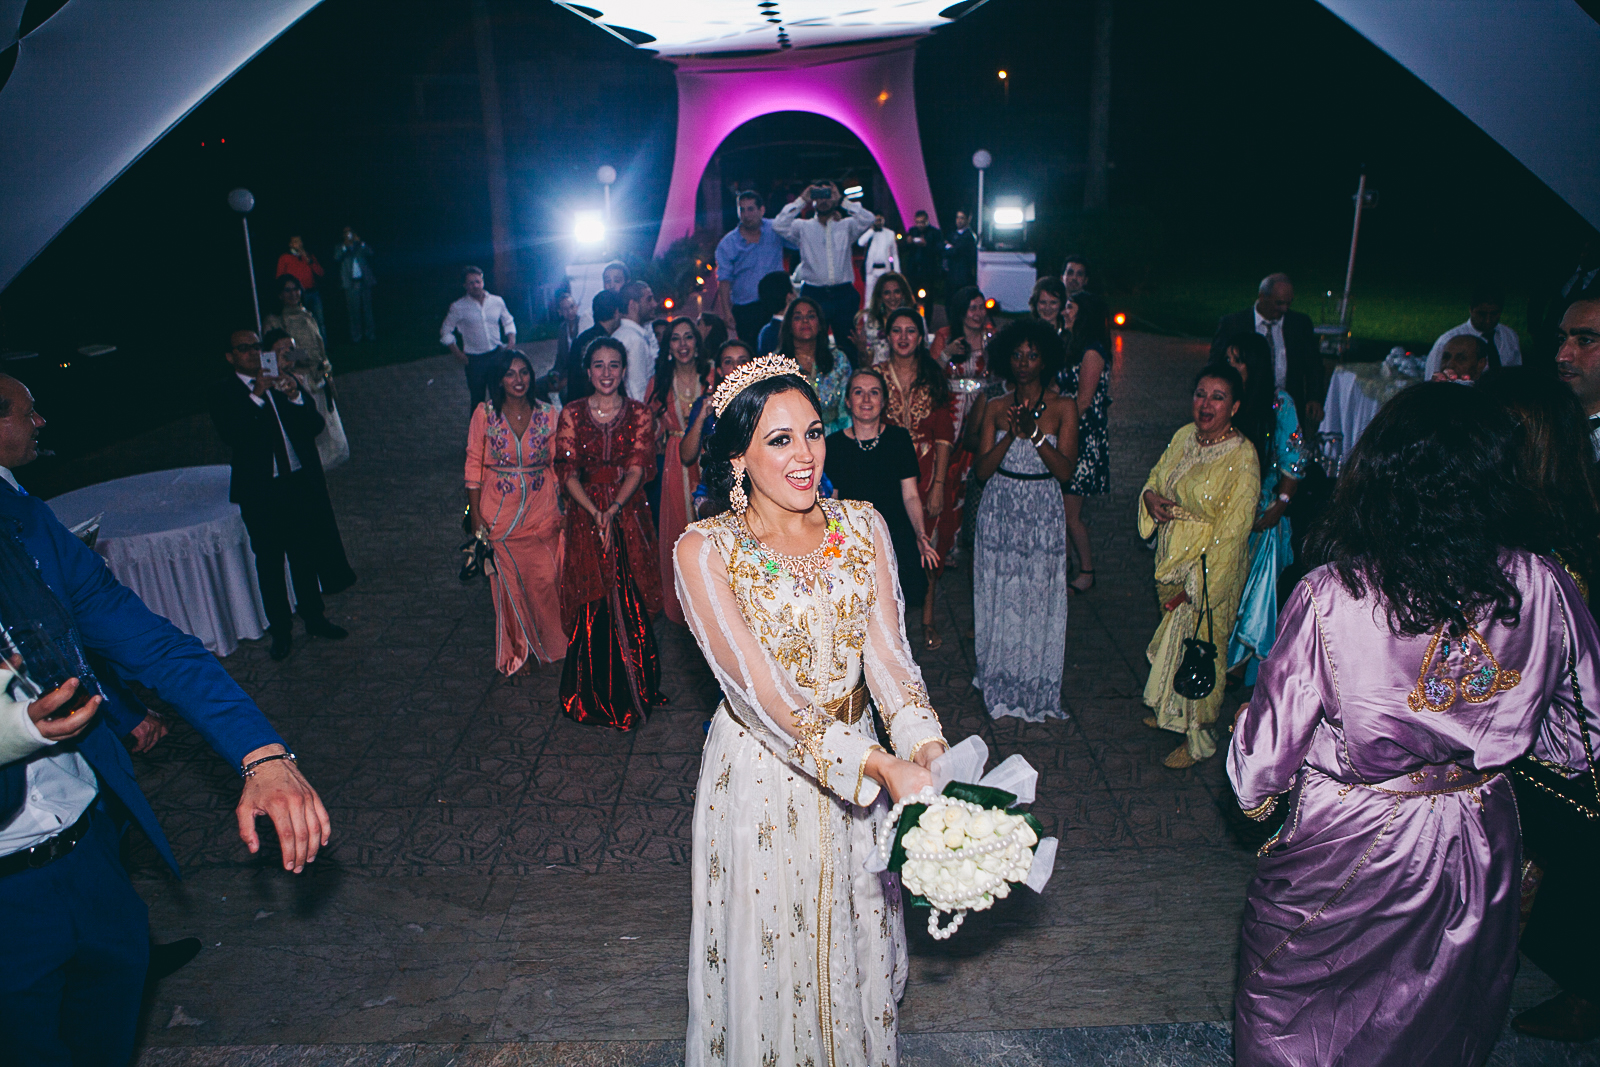 traditional_moroccan_wedding_photographry_casablanca_morocco_houda_vivek_ebony_siovhan_bokeh_photography_182.jpg